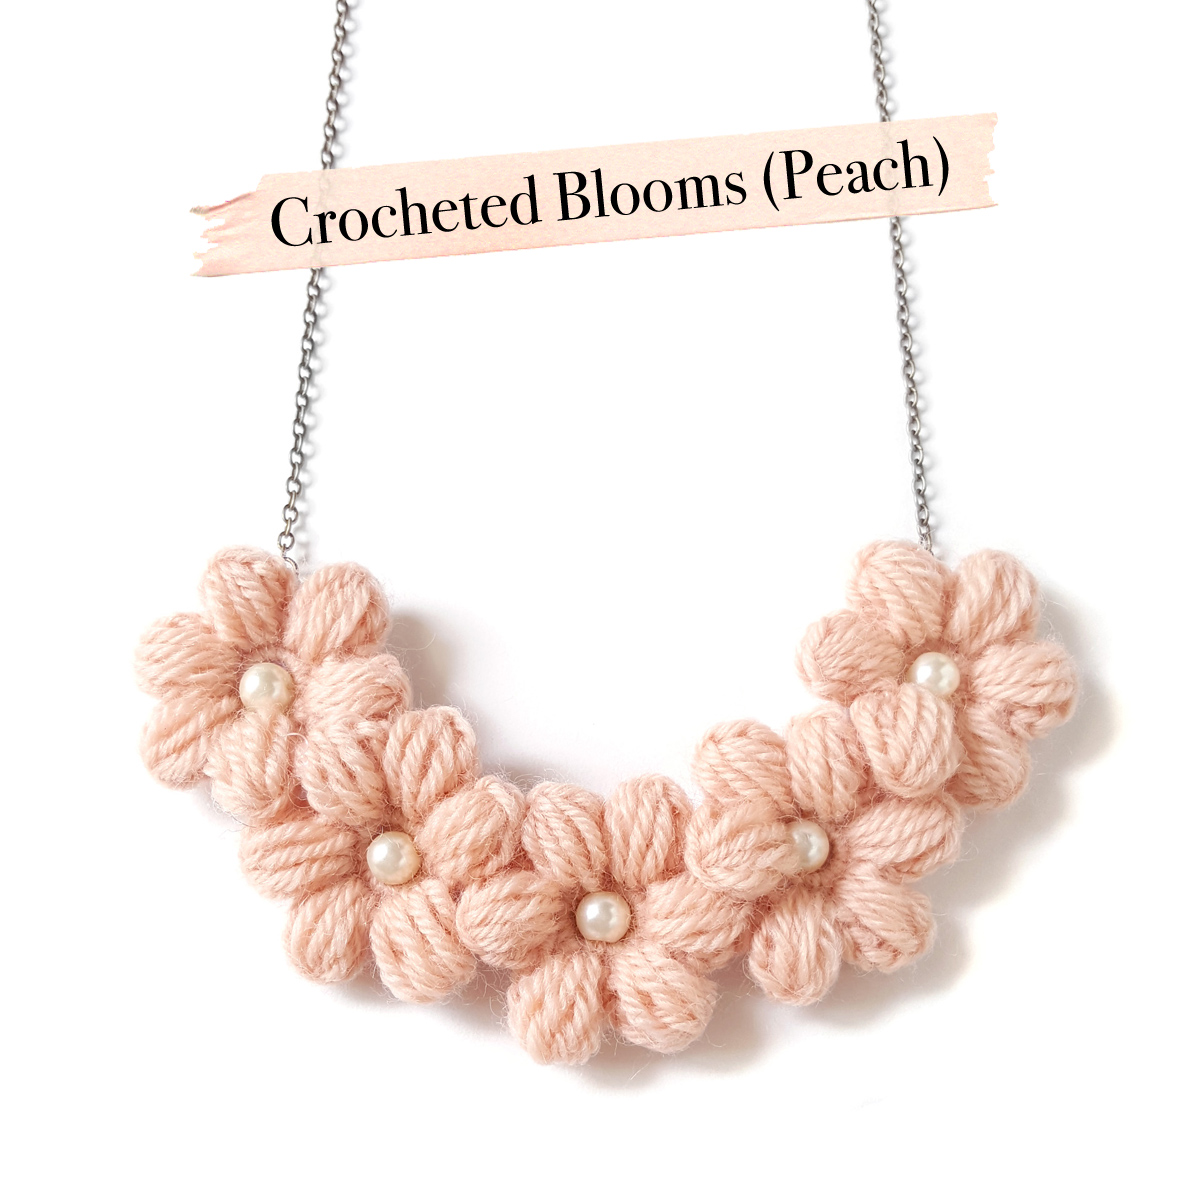 crochetedblooms-peach